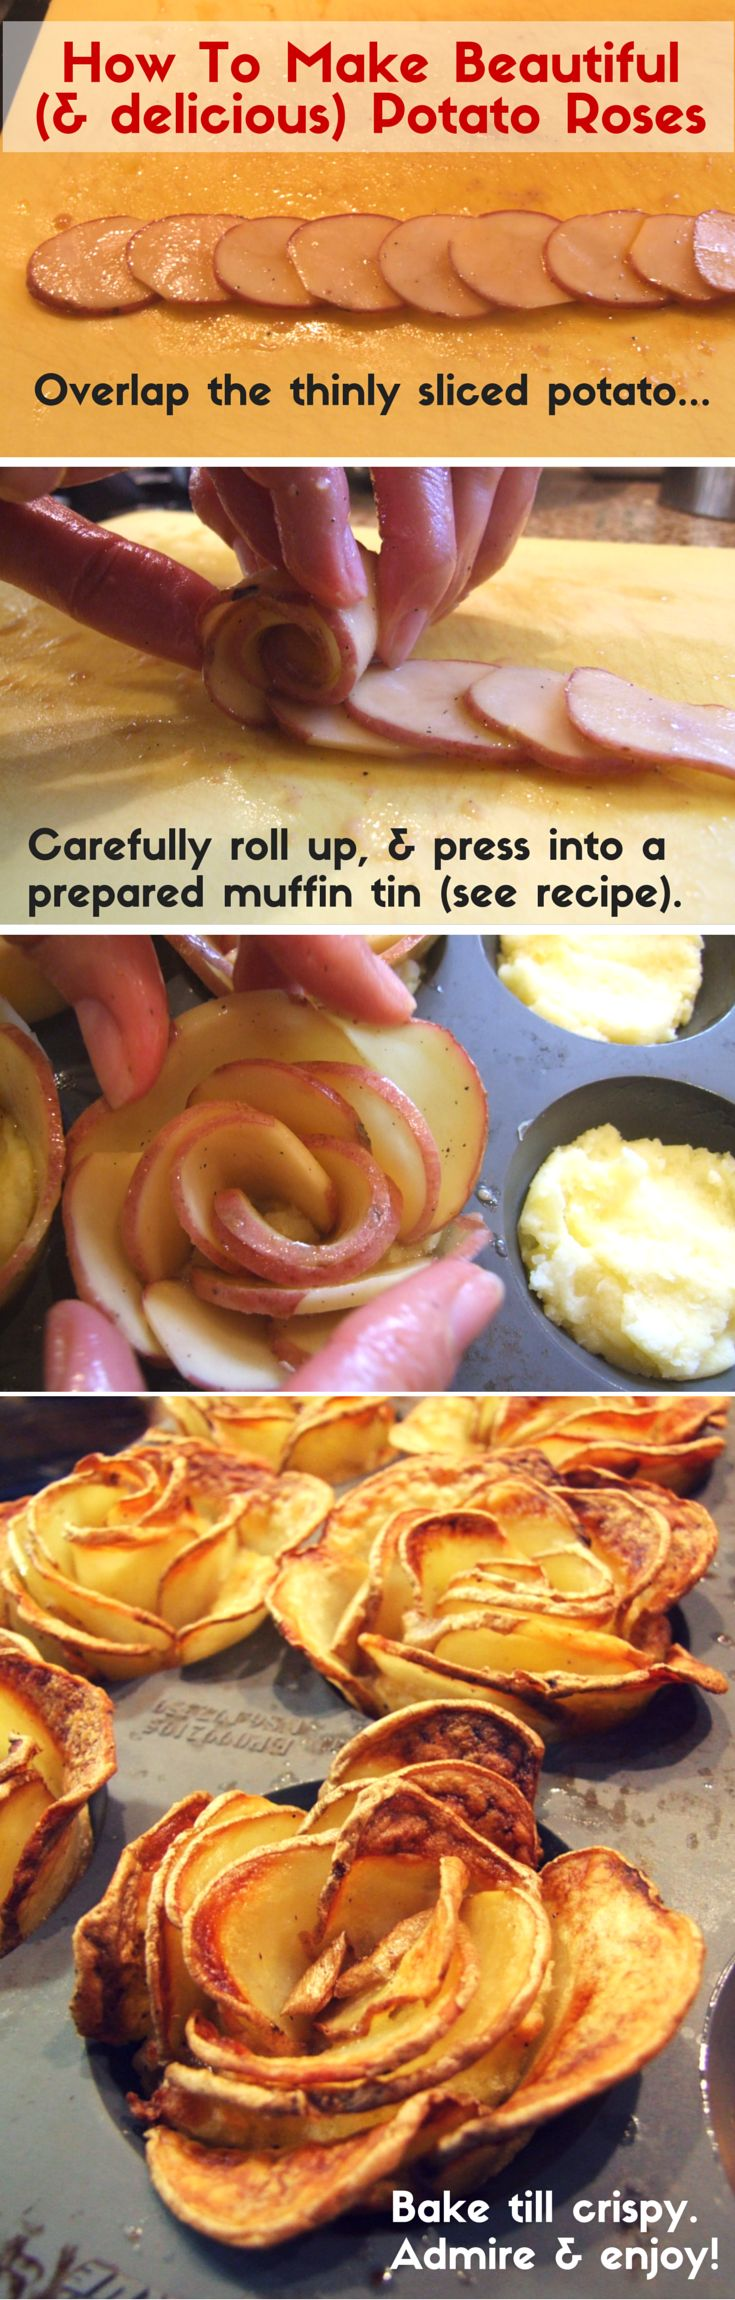 Tutorial: how to make potato roses. The most beautiful thing you can make with a potato. These gorgeous potato roses add a touch of glamour or romance to any plate. Simple, but impressive!